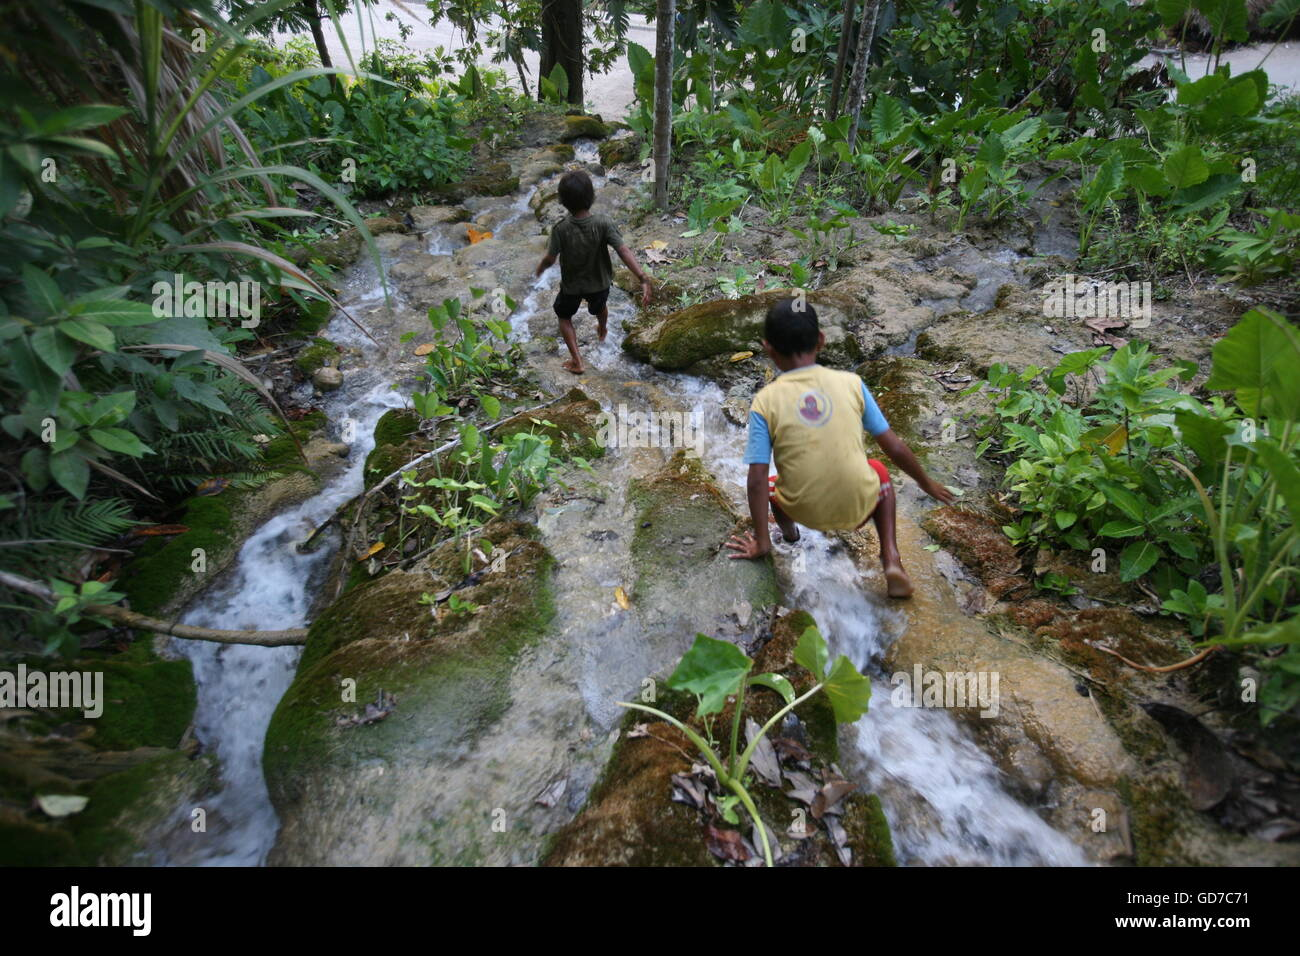 a waterfall in the town of Loihuno in the south of East Timor in southeastasia. Stock Photo